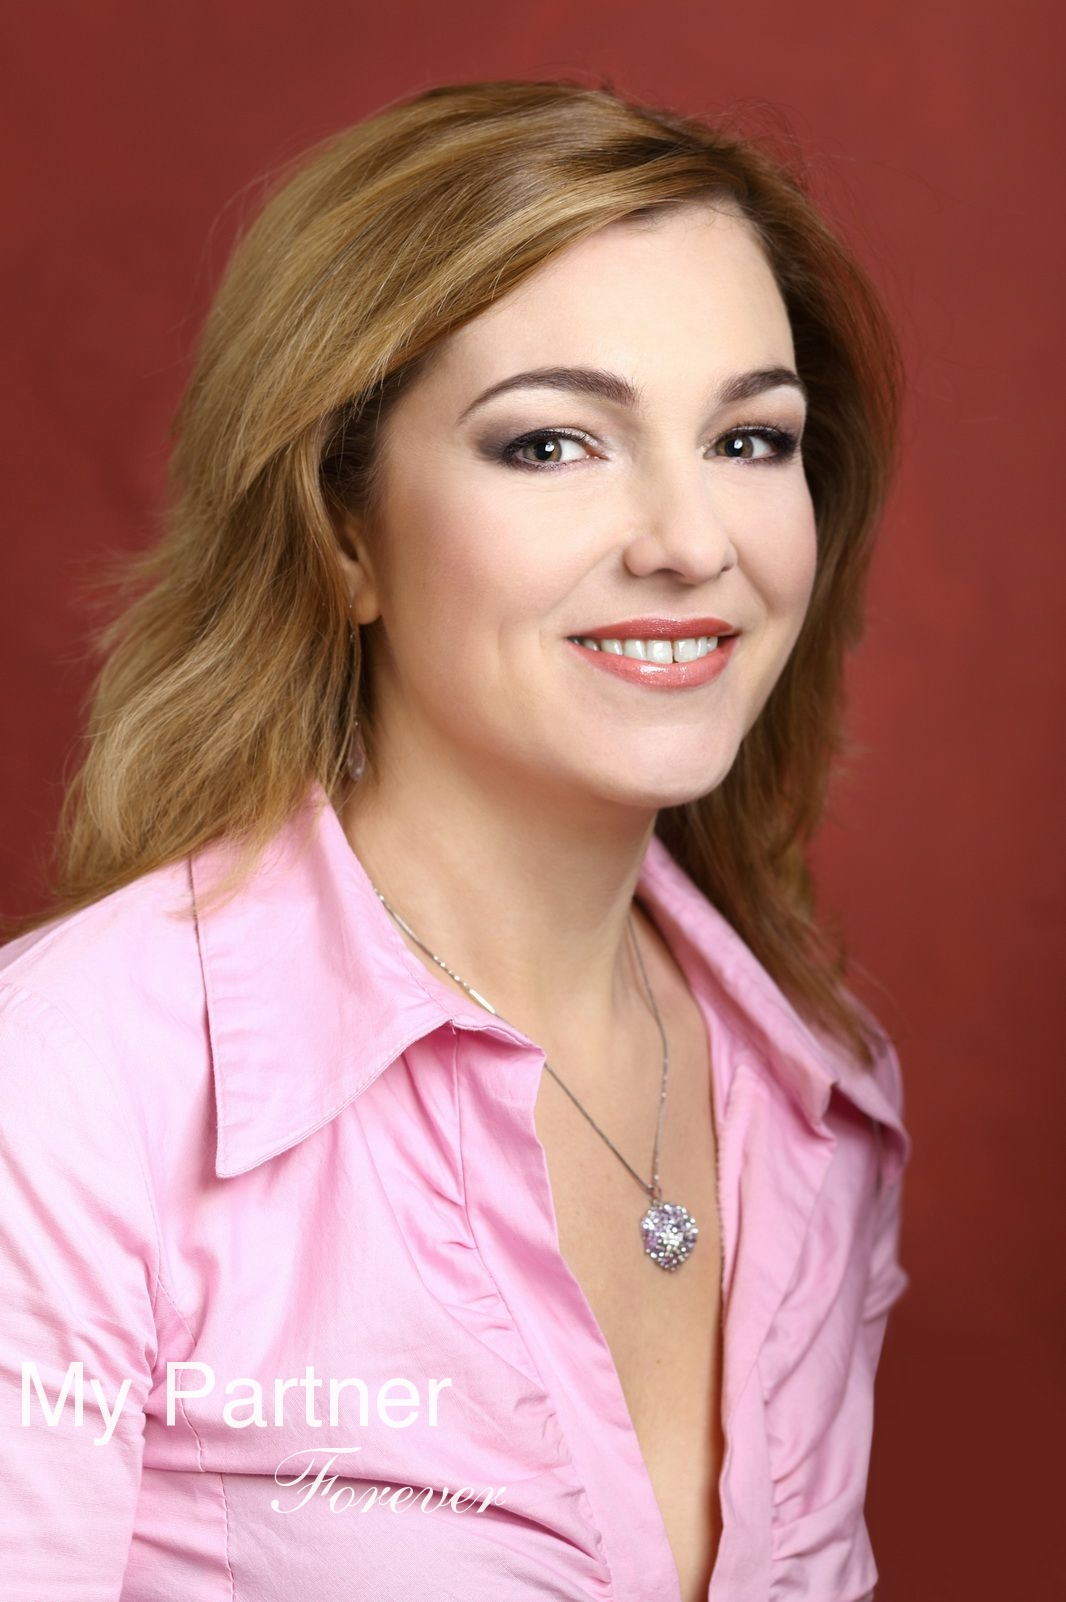 Charming Lady from Belarus - Elena from Grodno, Belarus